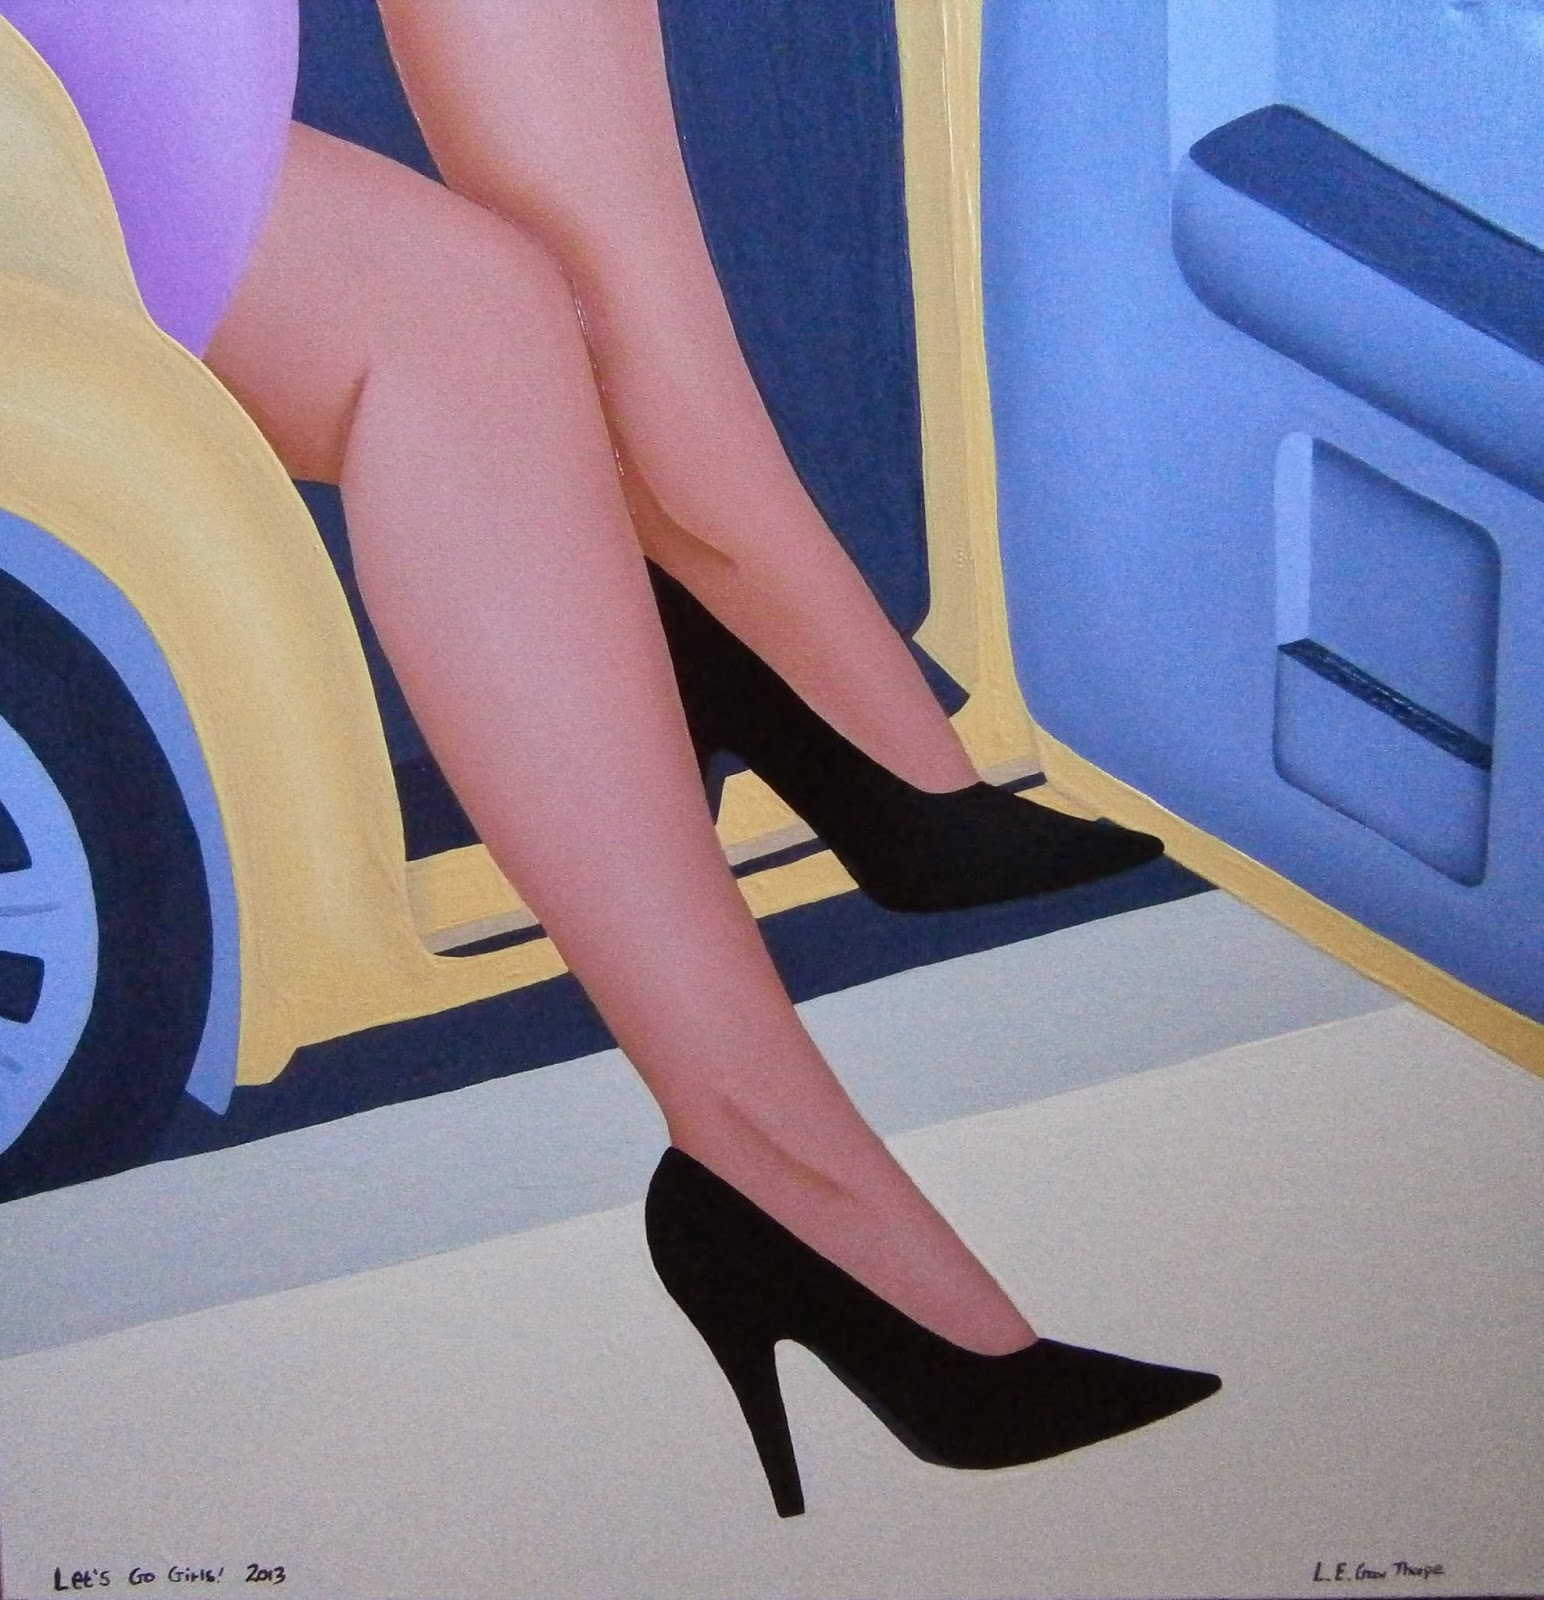 A woman wearing black courts stepping out of a New York yellow taxi cab